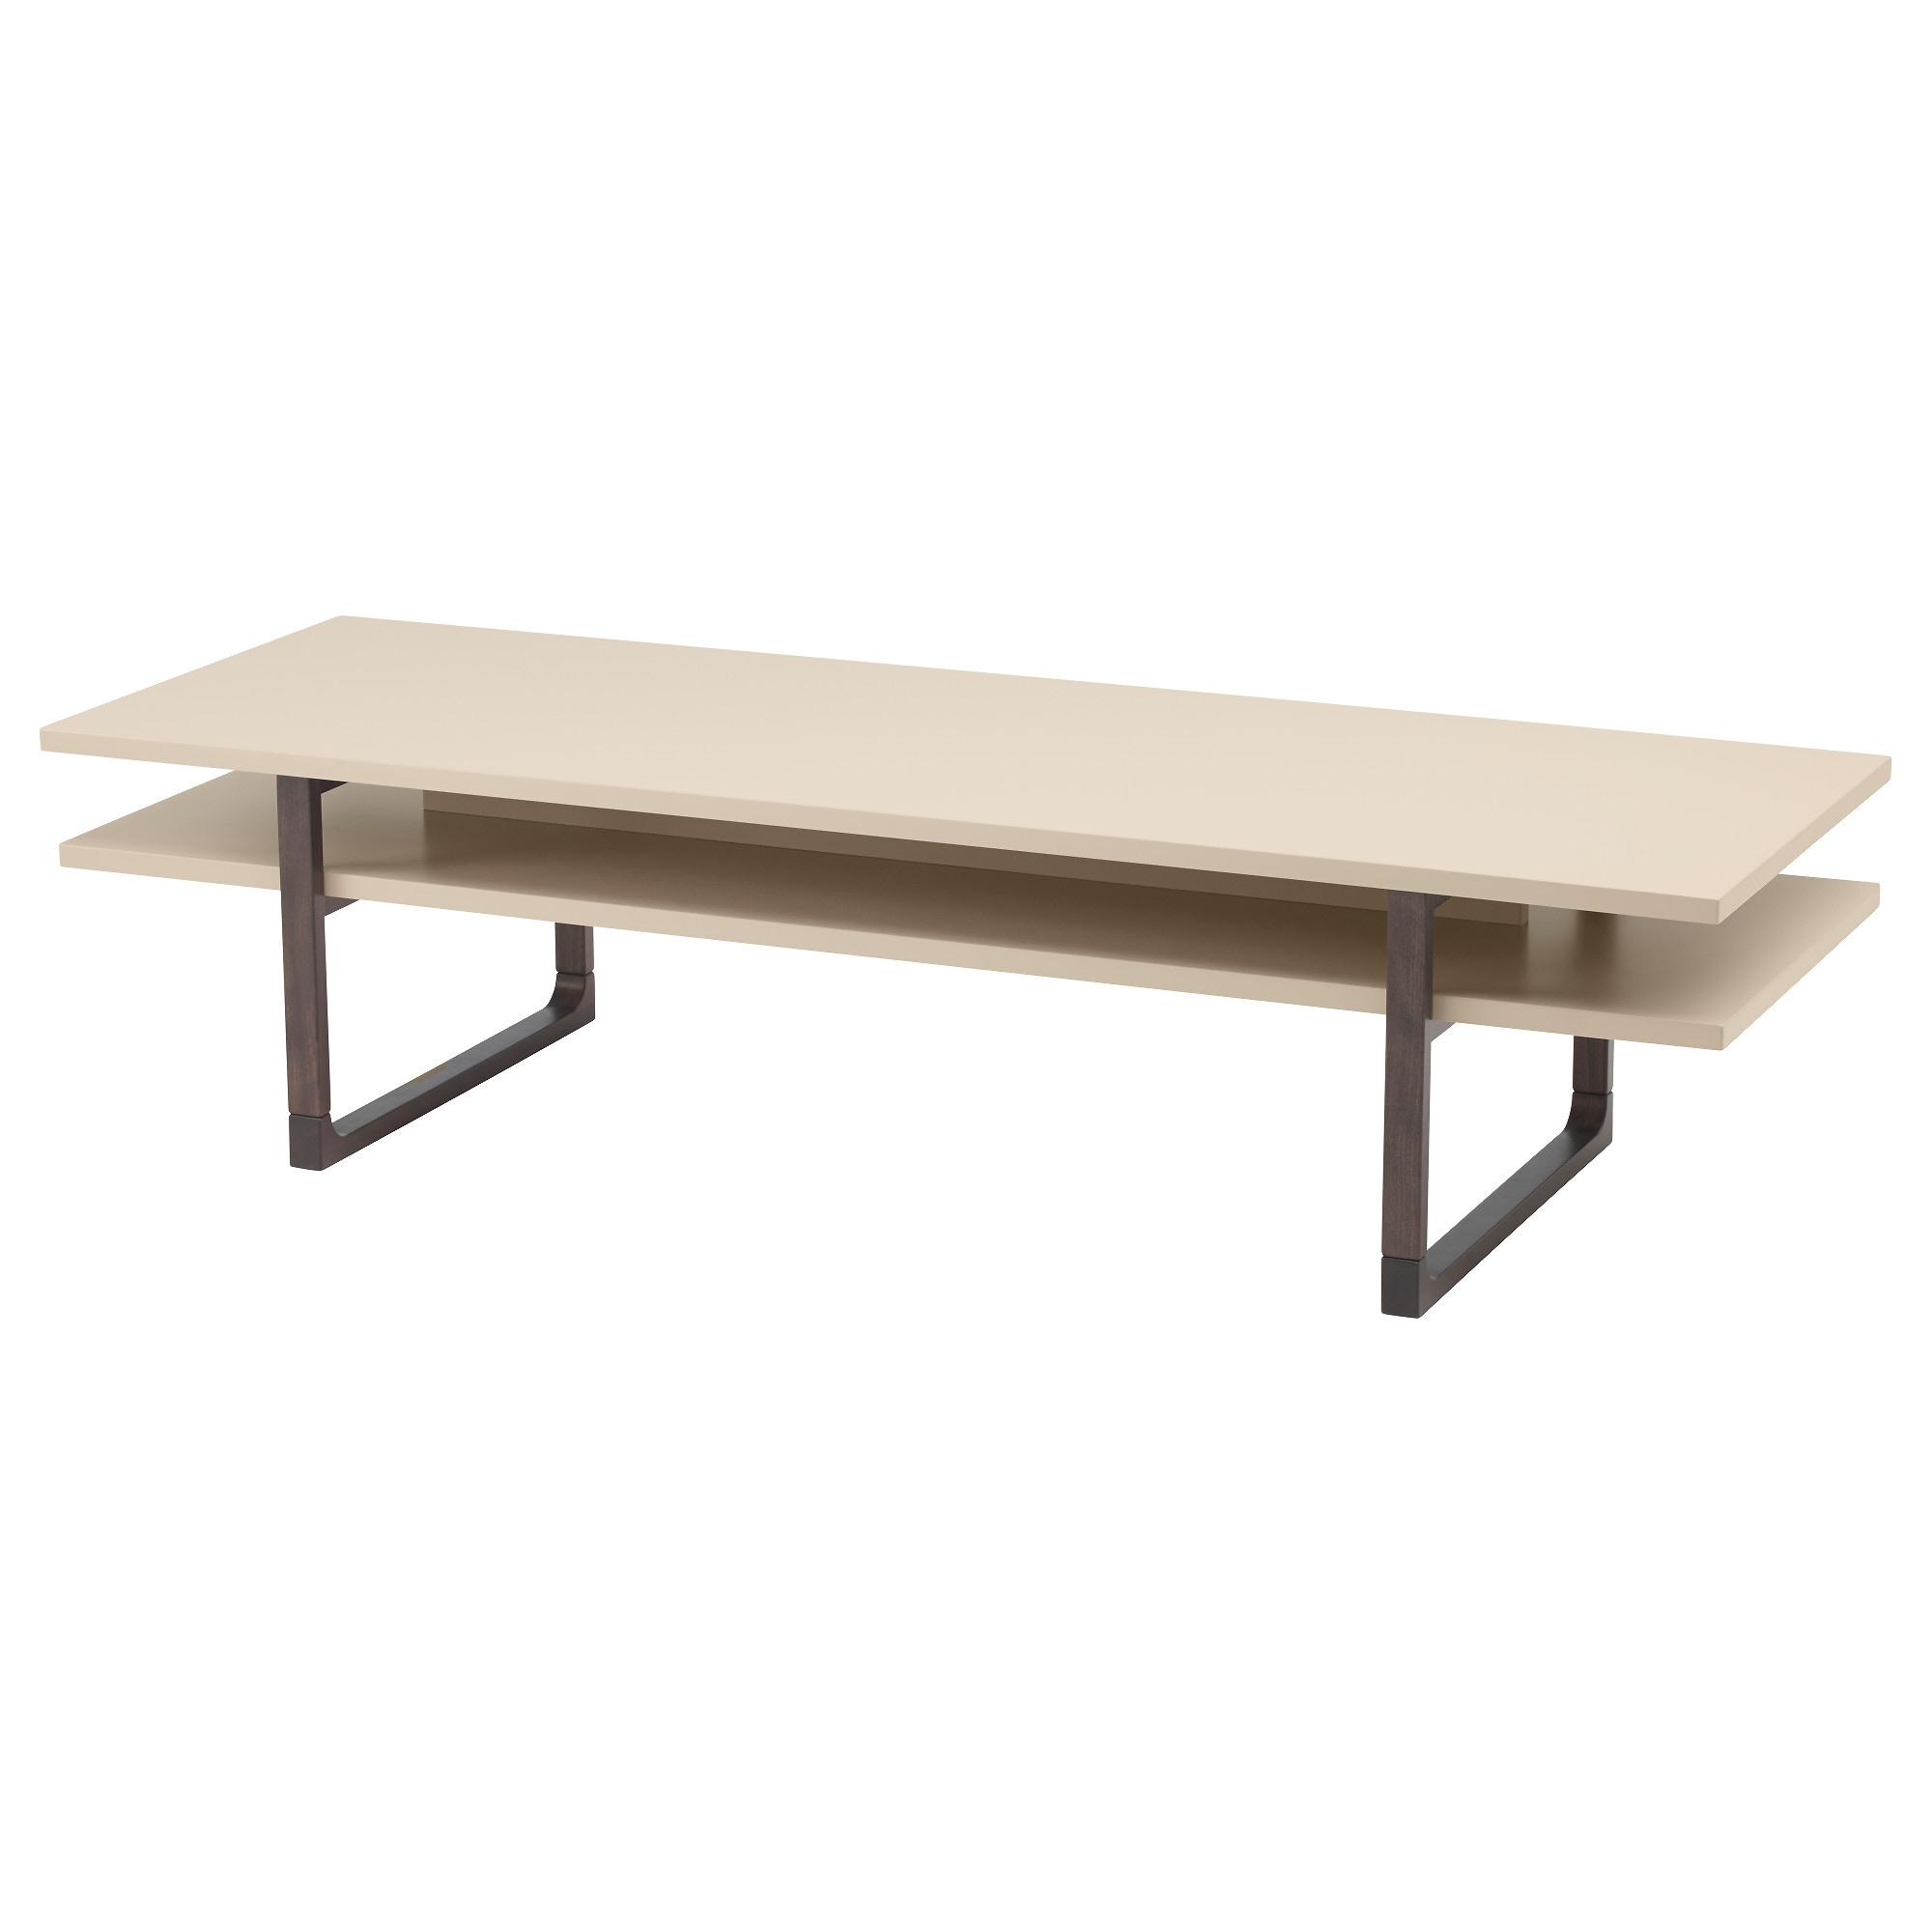 Standard Coffee Table Dimensions rissna coffee table - ikea